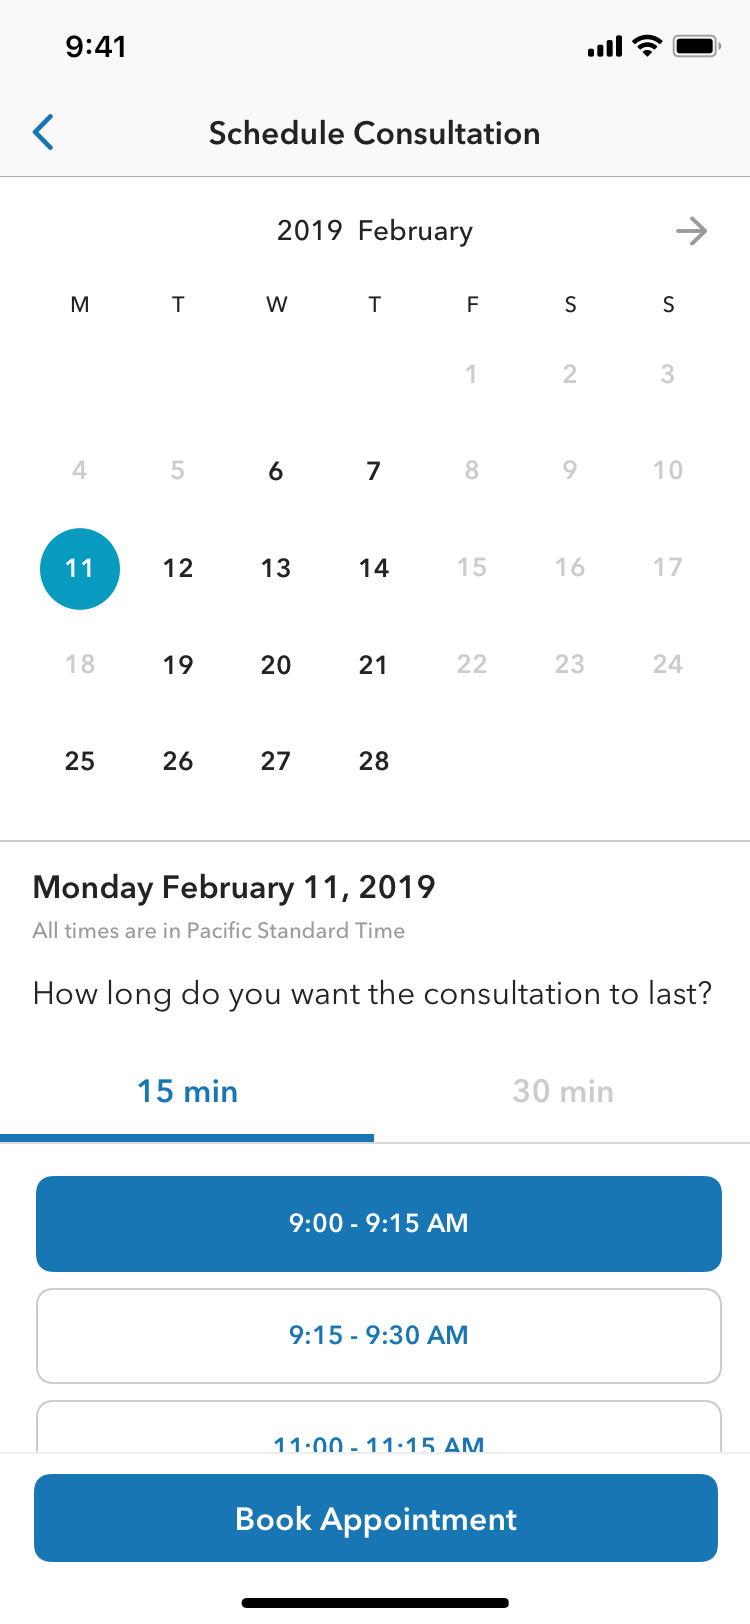 1. Unlimited future availability. 2. 15 min and 30 min of users' choice. 3. Set up follow-up consultation through the same flow.